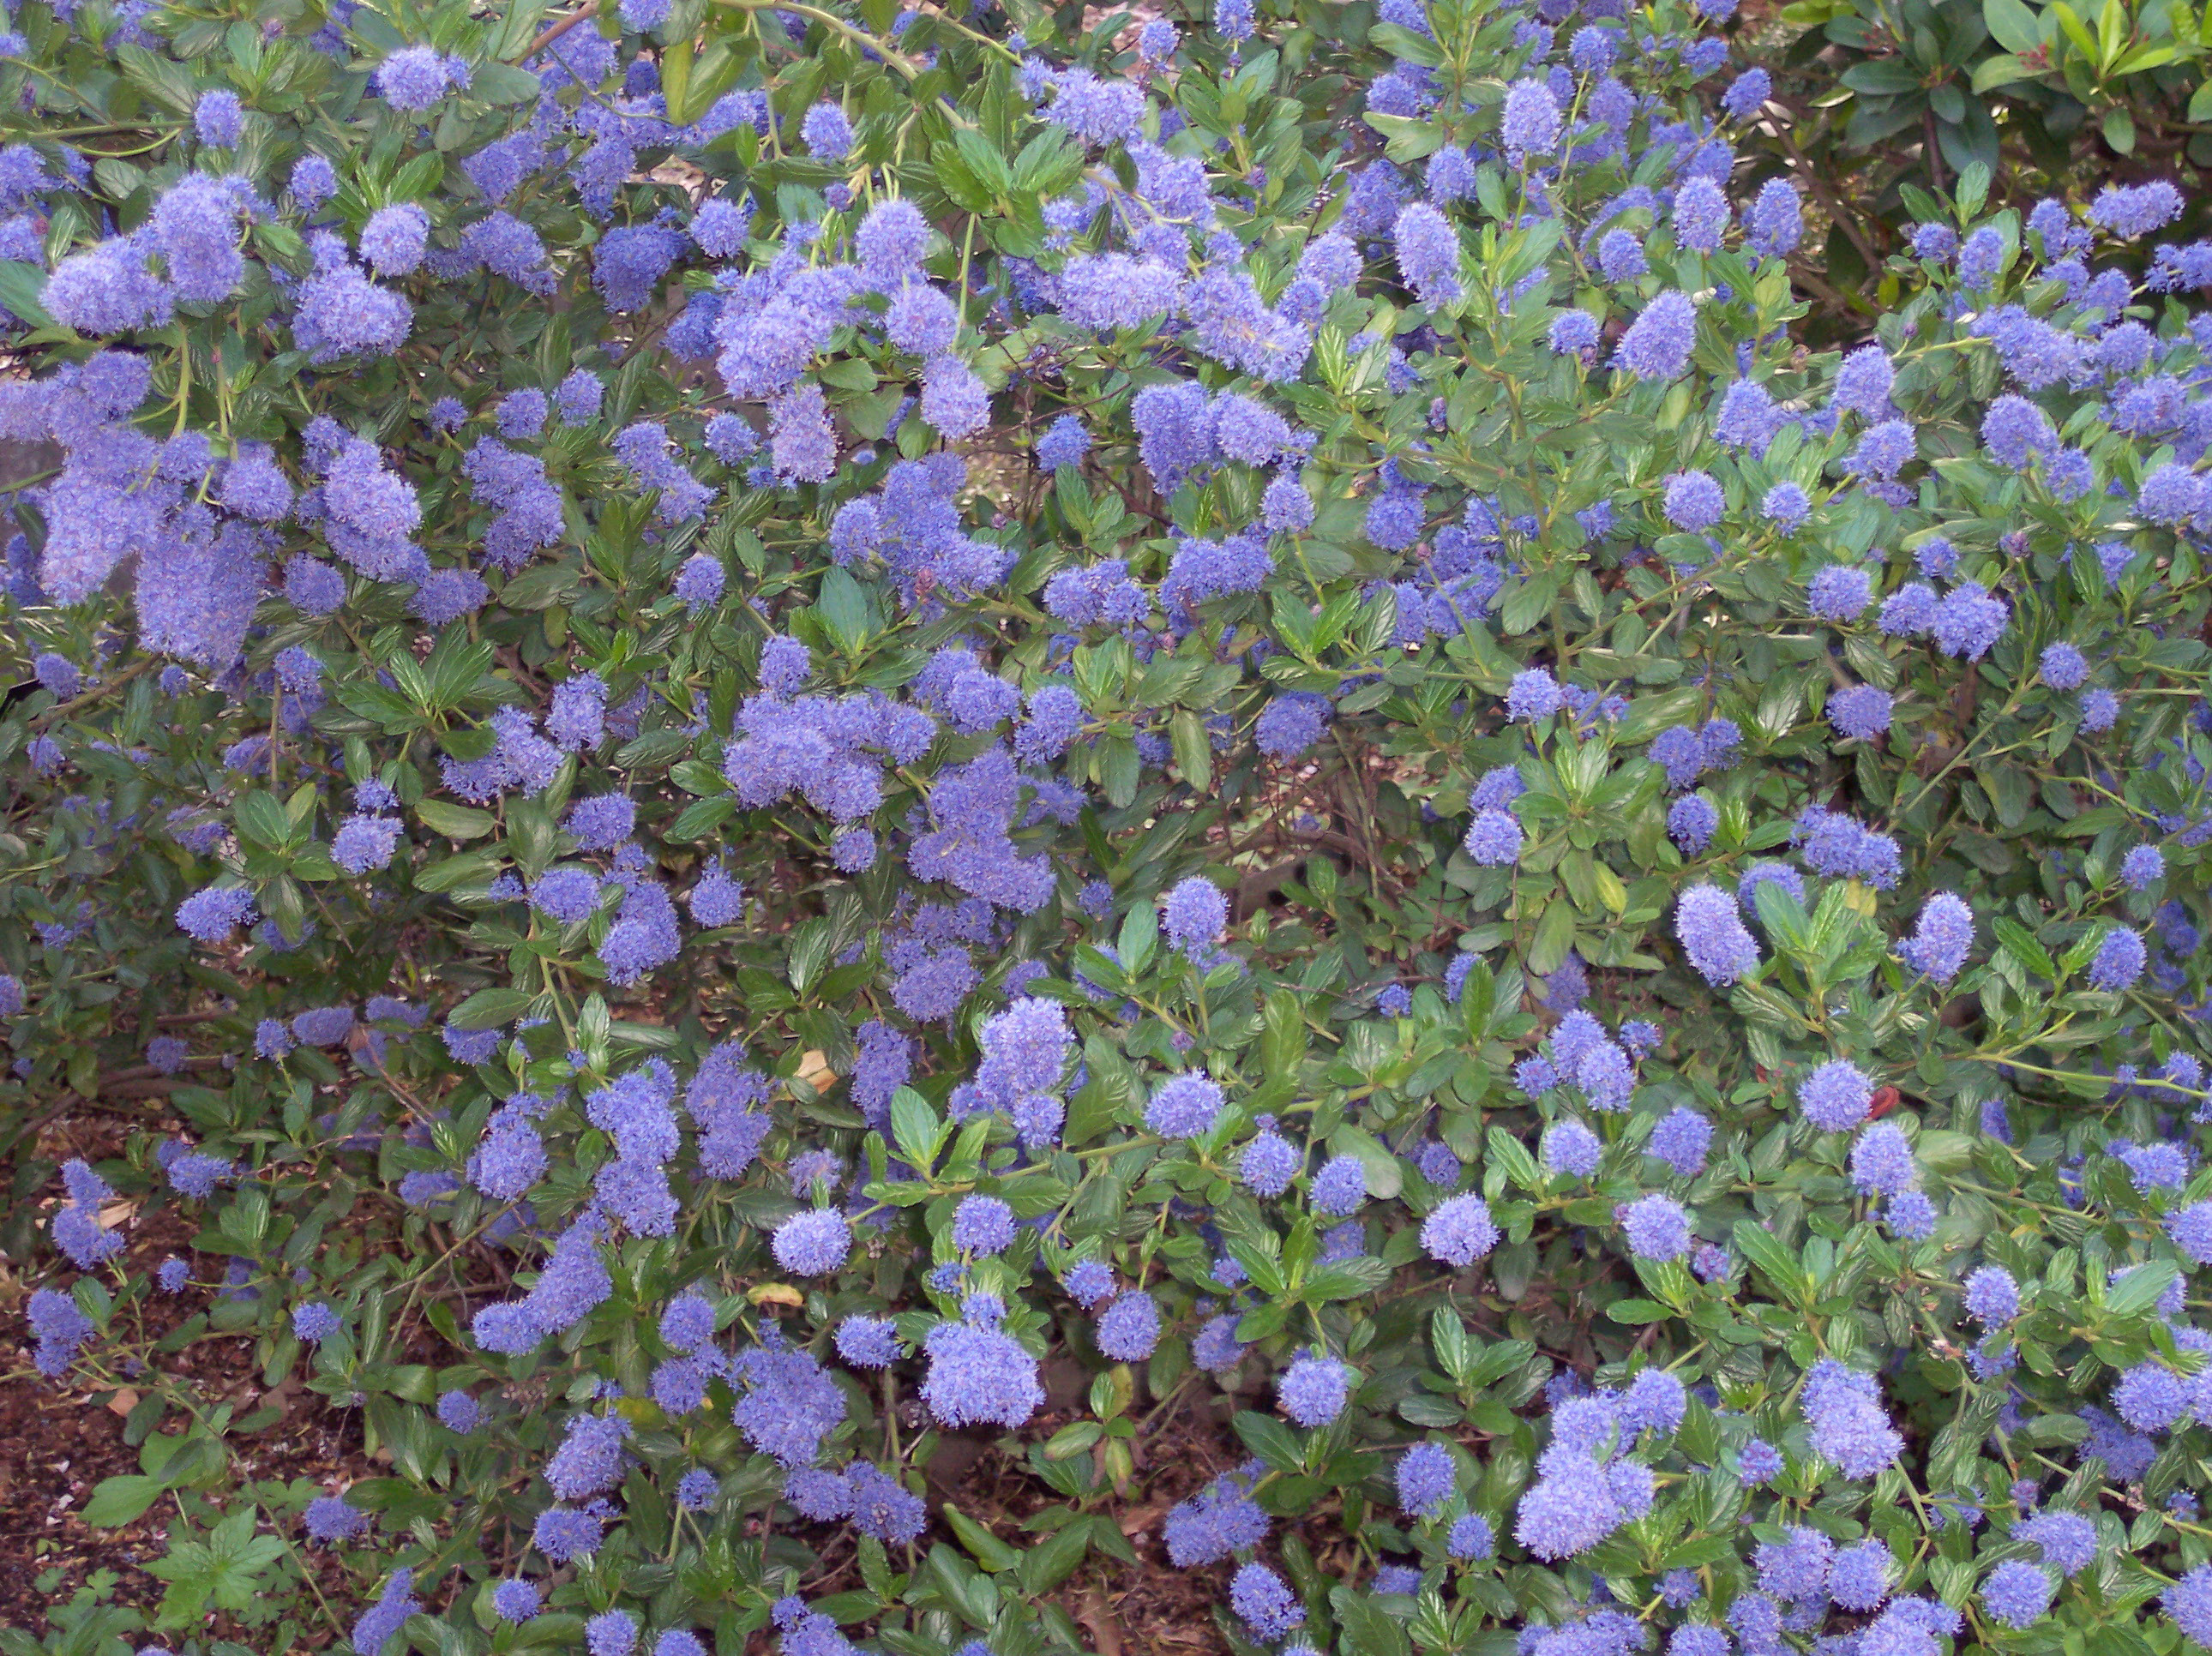 http://upload.wikimedia.org/wikipedia/commons/6/69/Ceanothus_thyrsiflorus.jpg